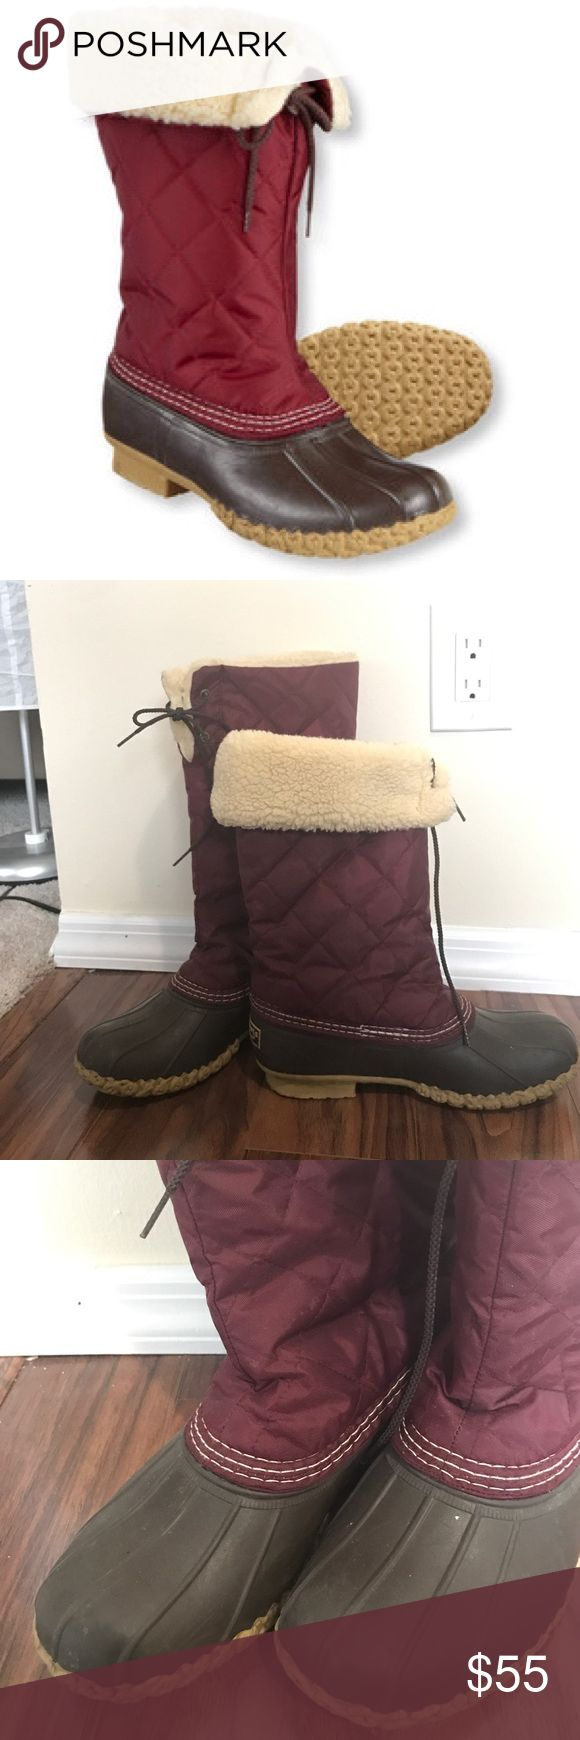 ⚡️FLASH SALE⚡️ Quilted LL Bean duck boots These run big ! Marked as a women's 7 but these would fit an 8/8.5 best. Bundle with an additional item in my closet for 20% off! L.L. Bean Shoes Winter & Rain Boots